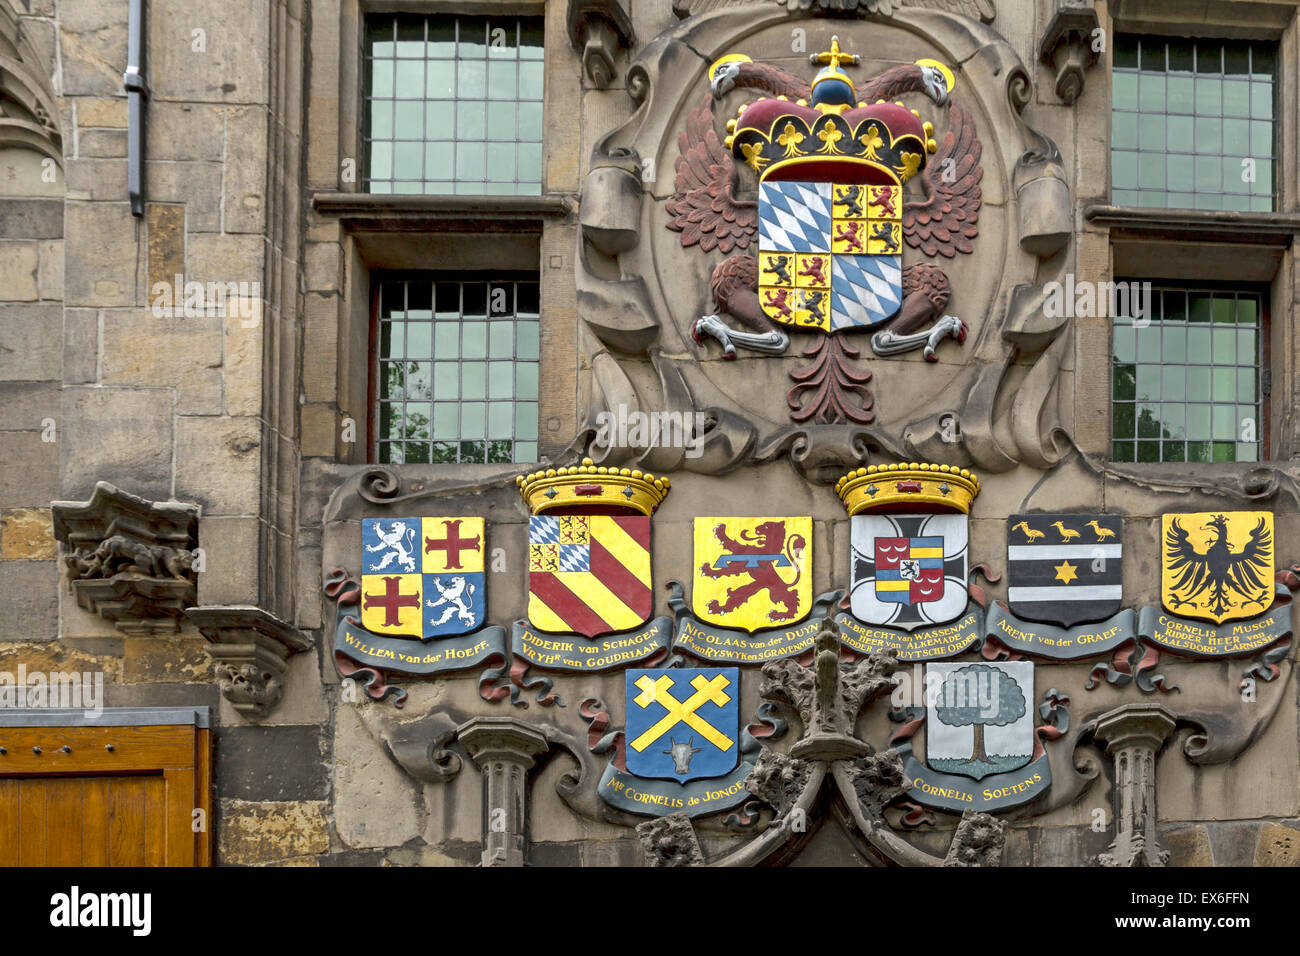 Facade of monumental home with numerous coats of arms, ''The arms of Savoy'', Oude Delft, Delft, - Stock Image